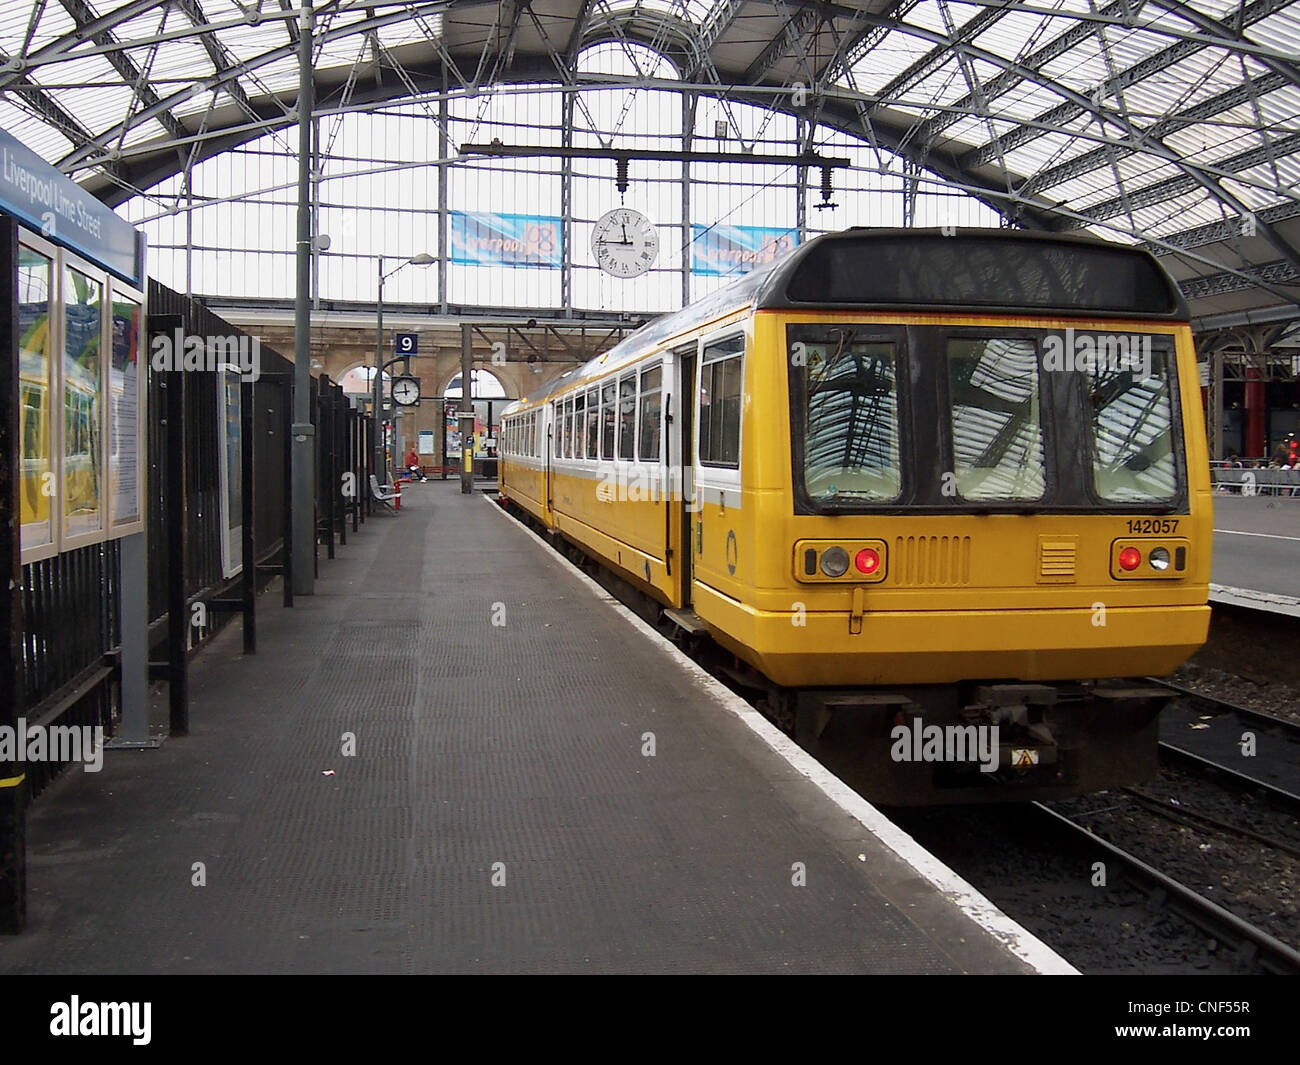 A refurbished Merseyrail Class 142 No. 142057 at Liverpool Lime Street Station - Stock Image